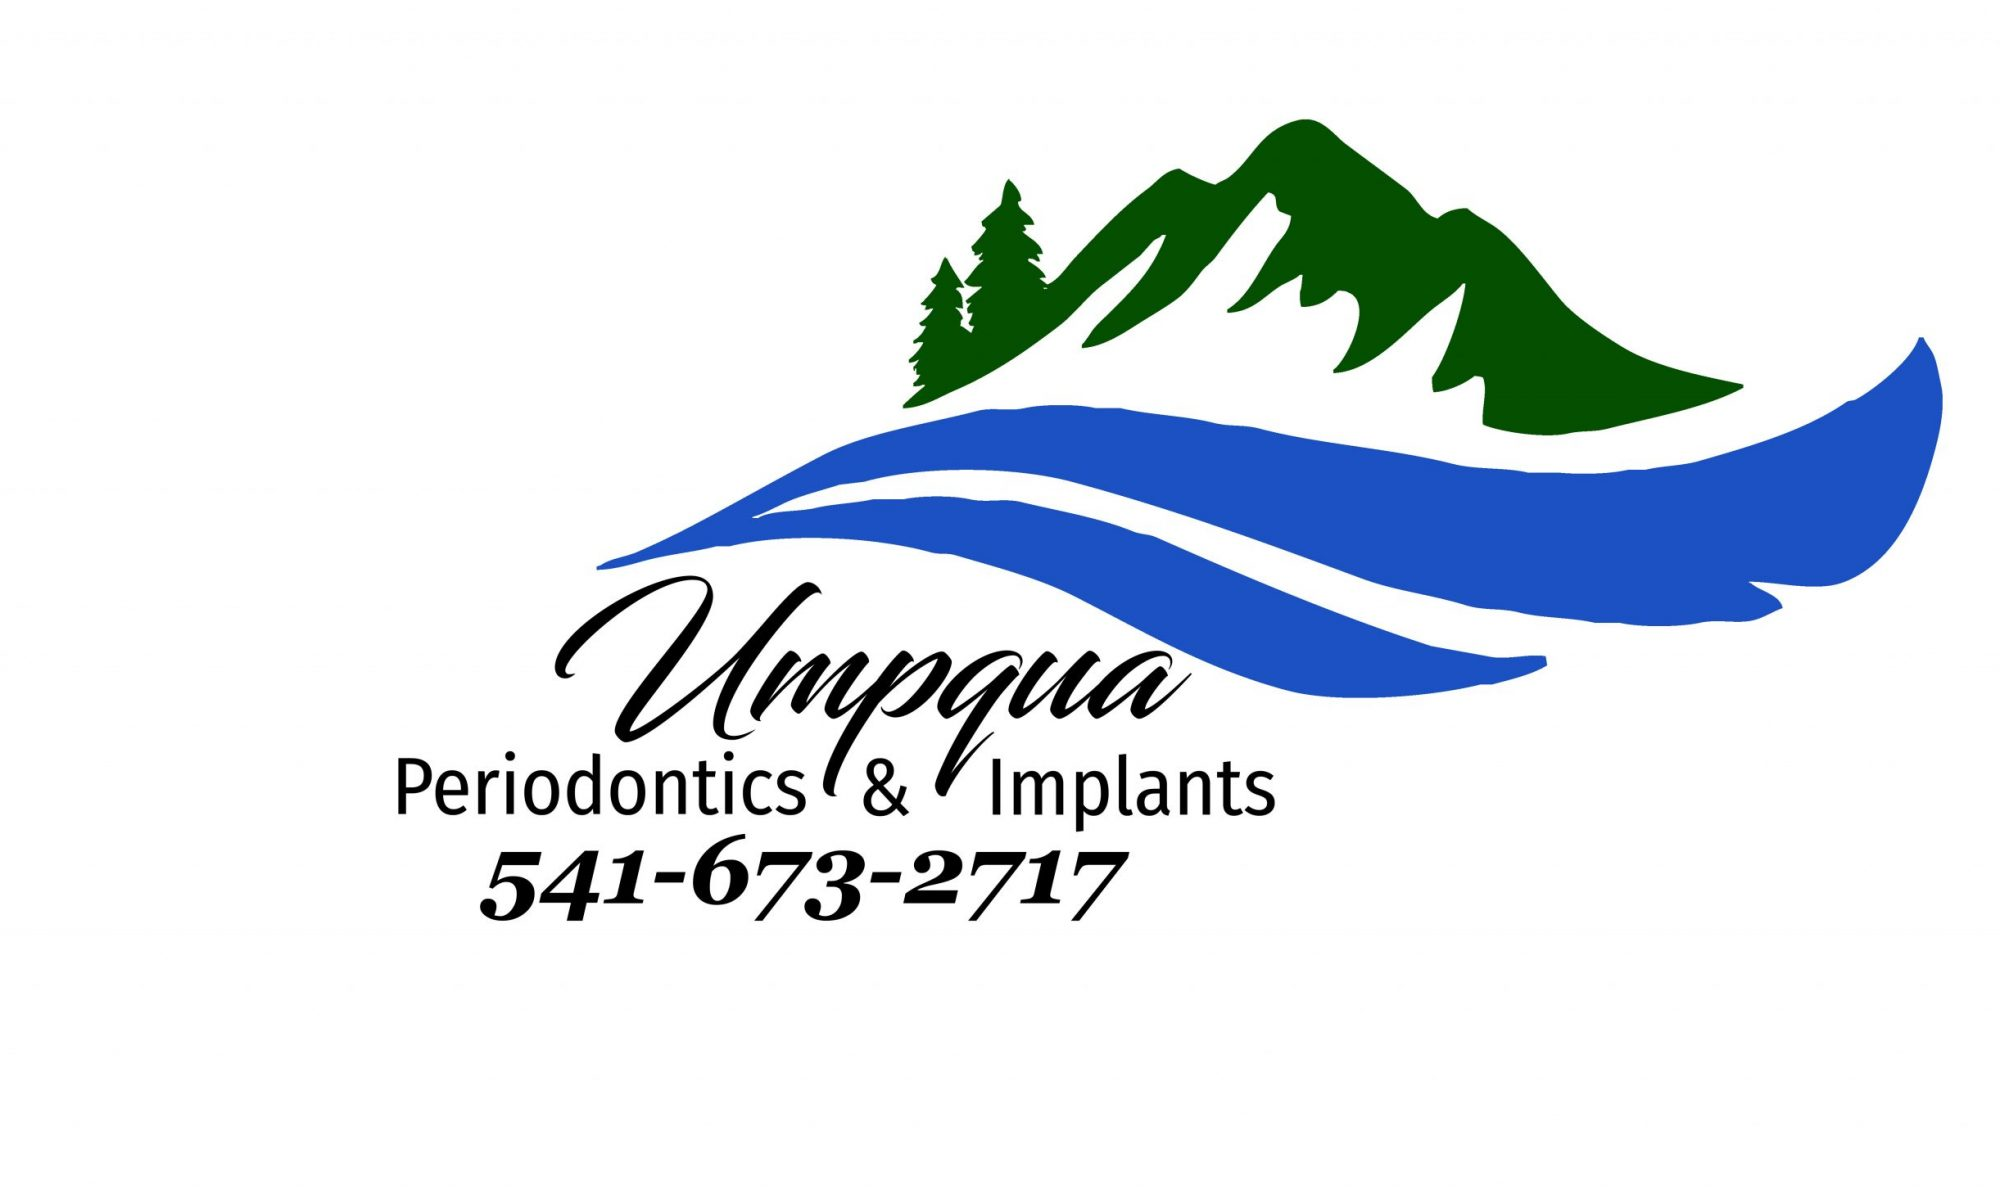 Umpqua Periodontics & Implants